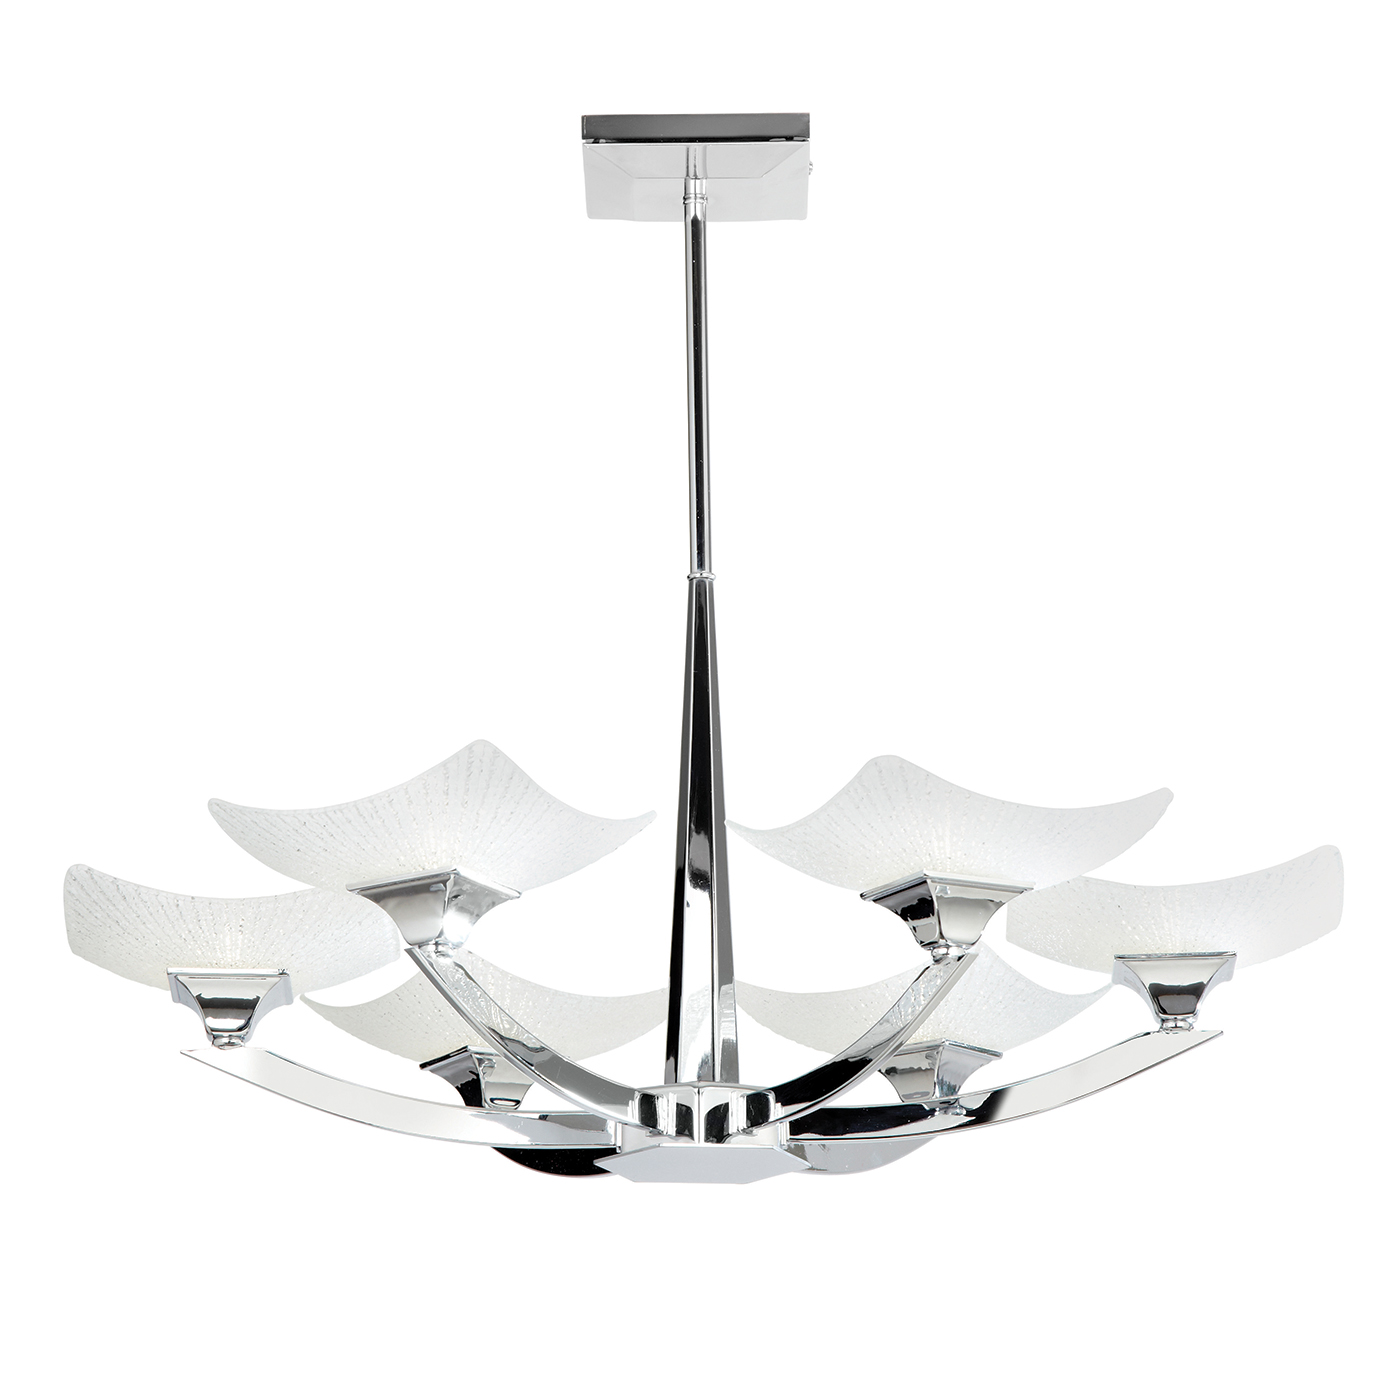 Endon Ayres ceiling light 6x 33W Chrome effect plate & scavo effect glass Thumbnail 1